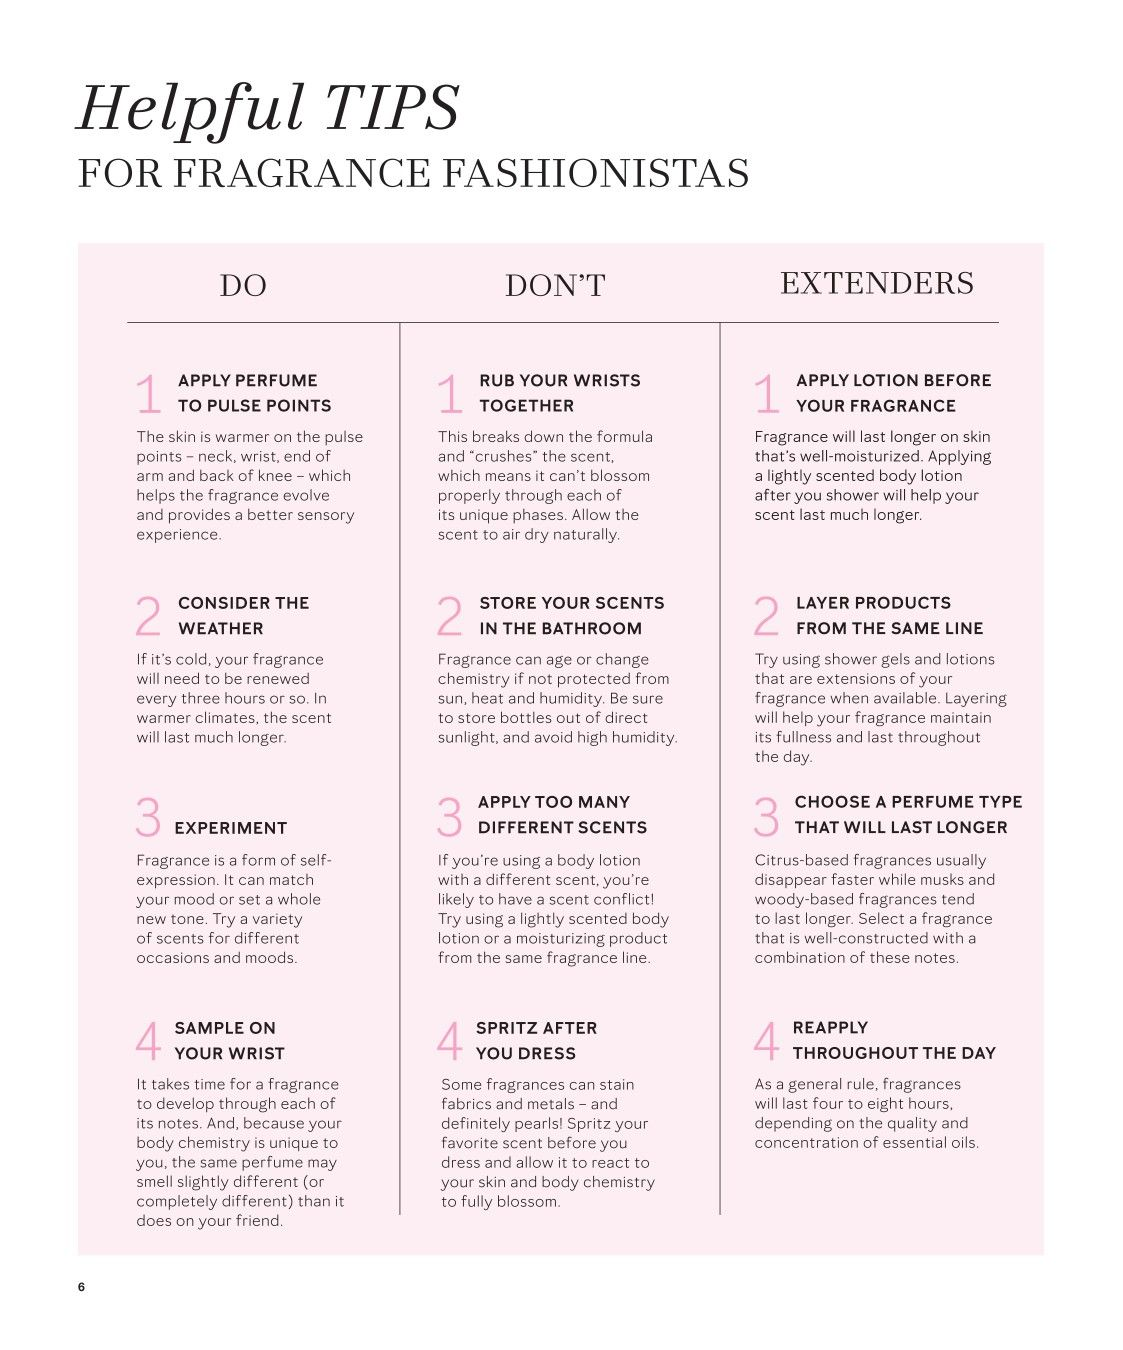 Pin by Julia Gerlach on Mary kay Helpful hints, How to